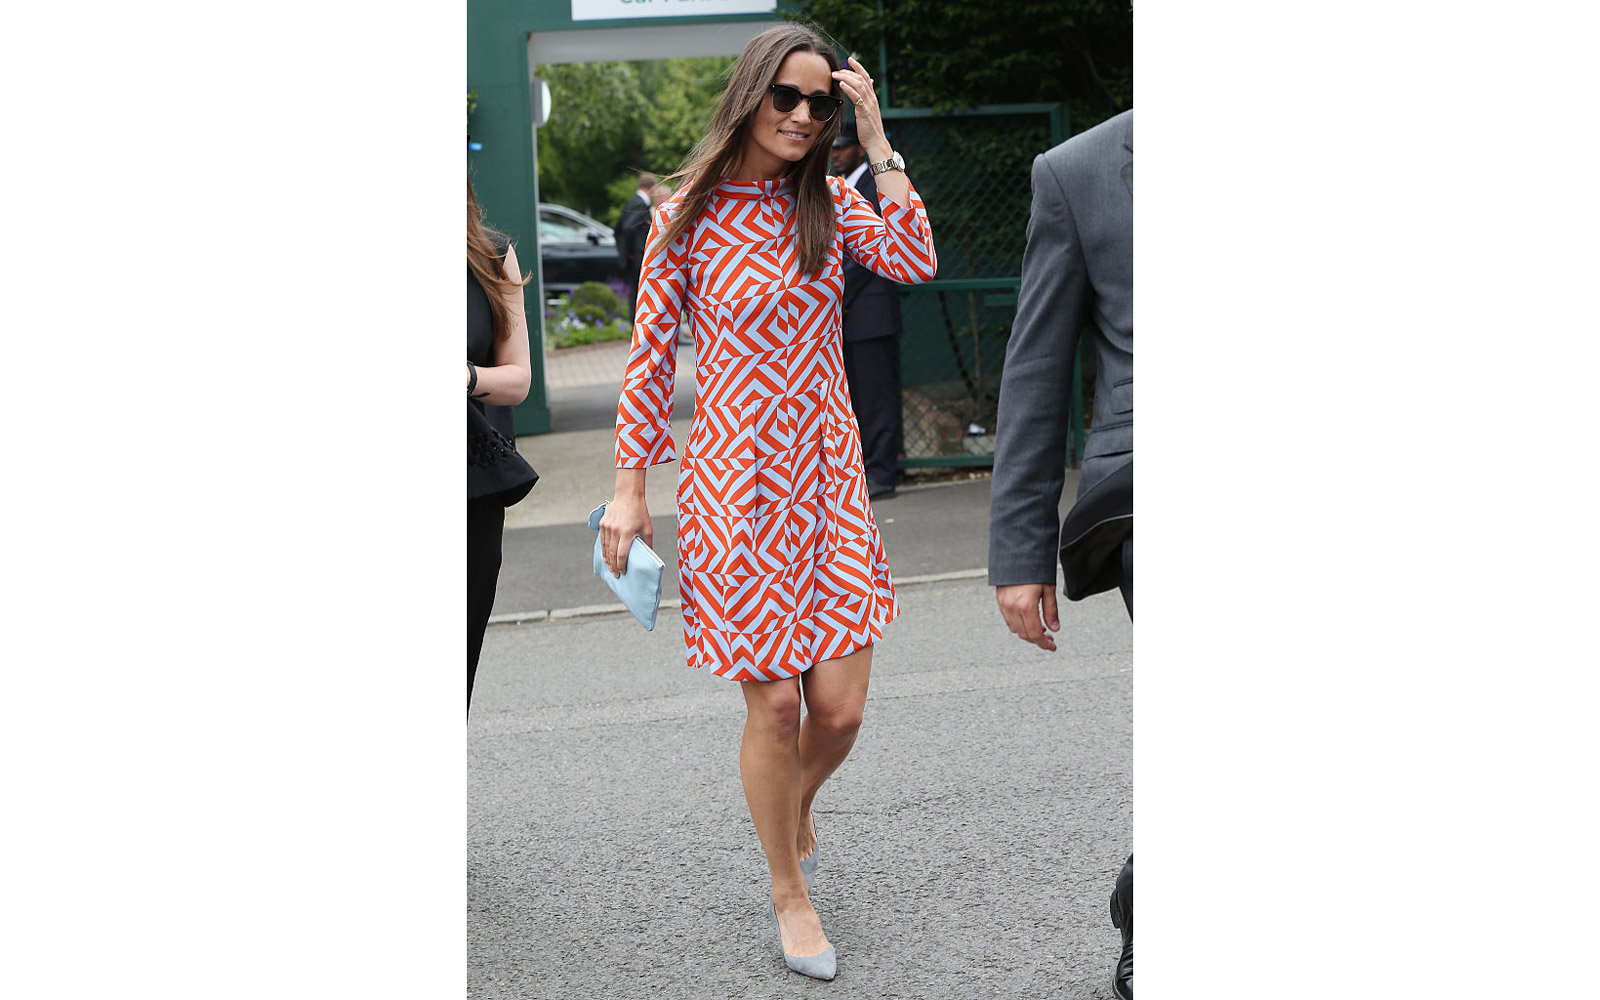 LONDON, ENGLAND - JULY 04:  Pippa Middleton seen arriving at Wimbledon on July 4, 2016 in London, England.  (Photo by Neil Mockford/GC Images)